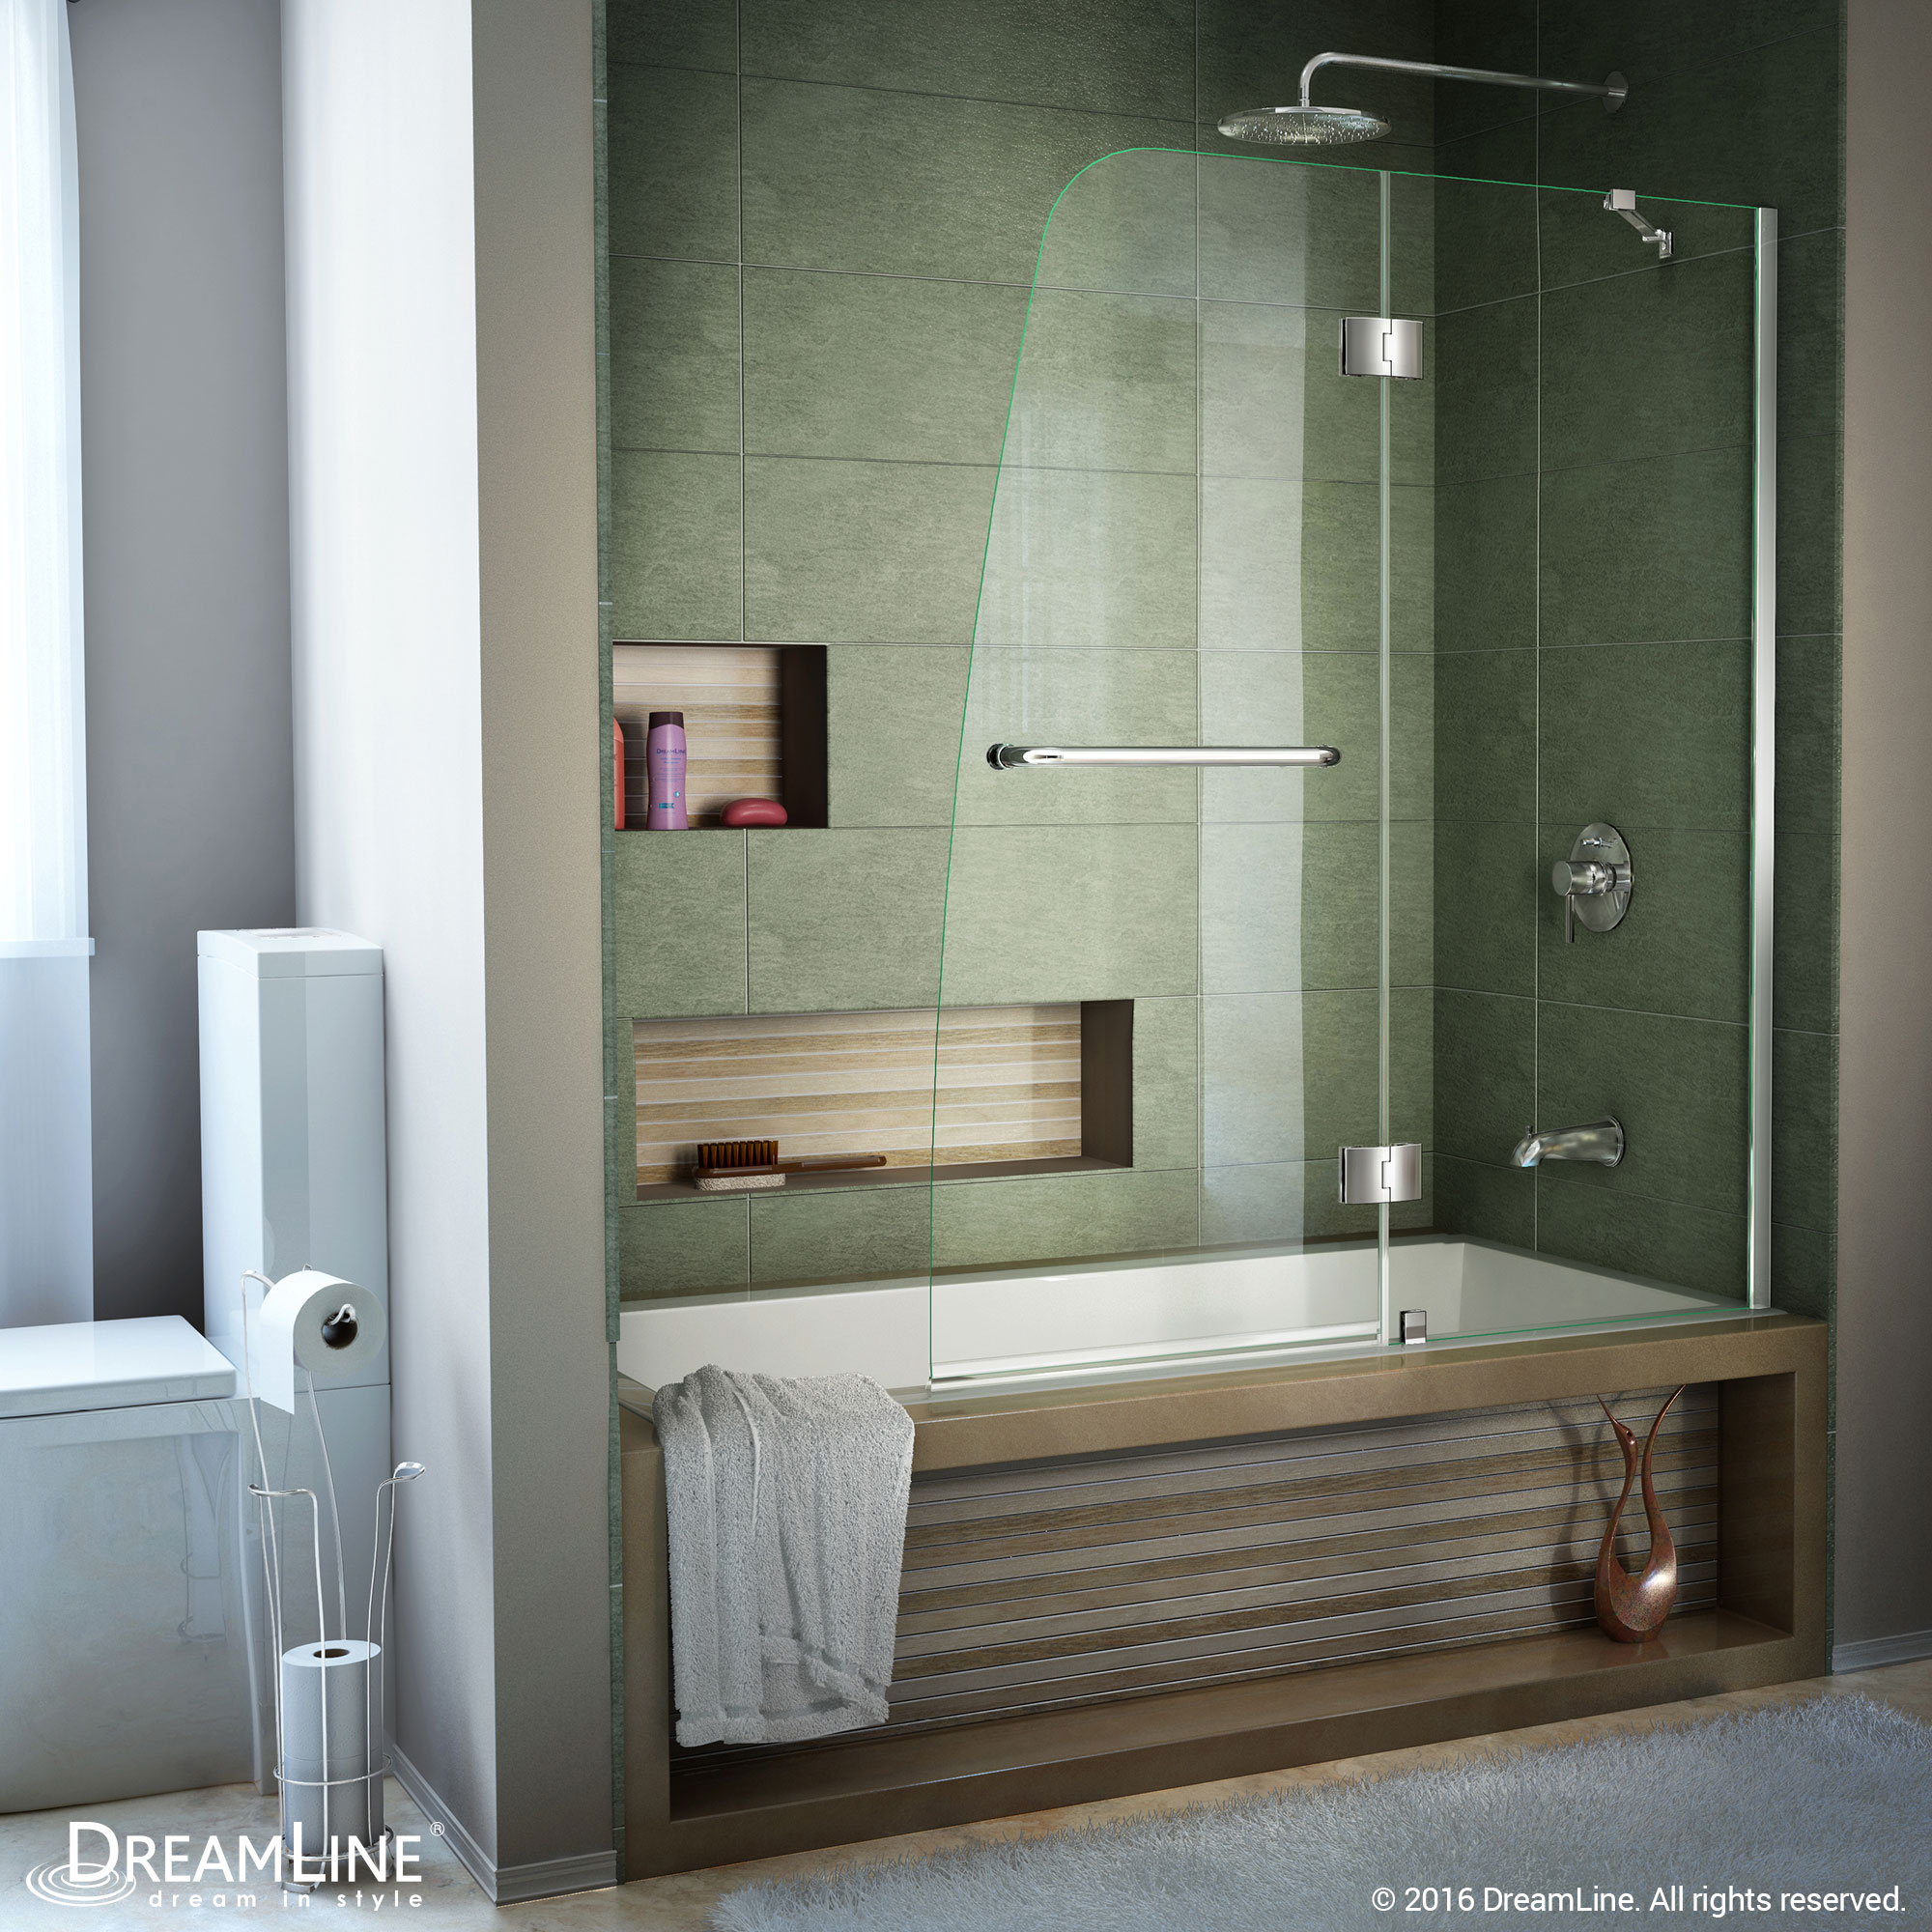 DreamLine Aqua 48 in. W x 58 in. H Frameless Hinged Tub Door in Brushed Nickel